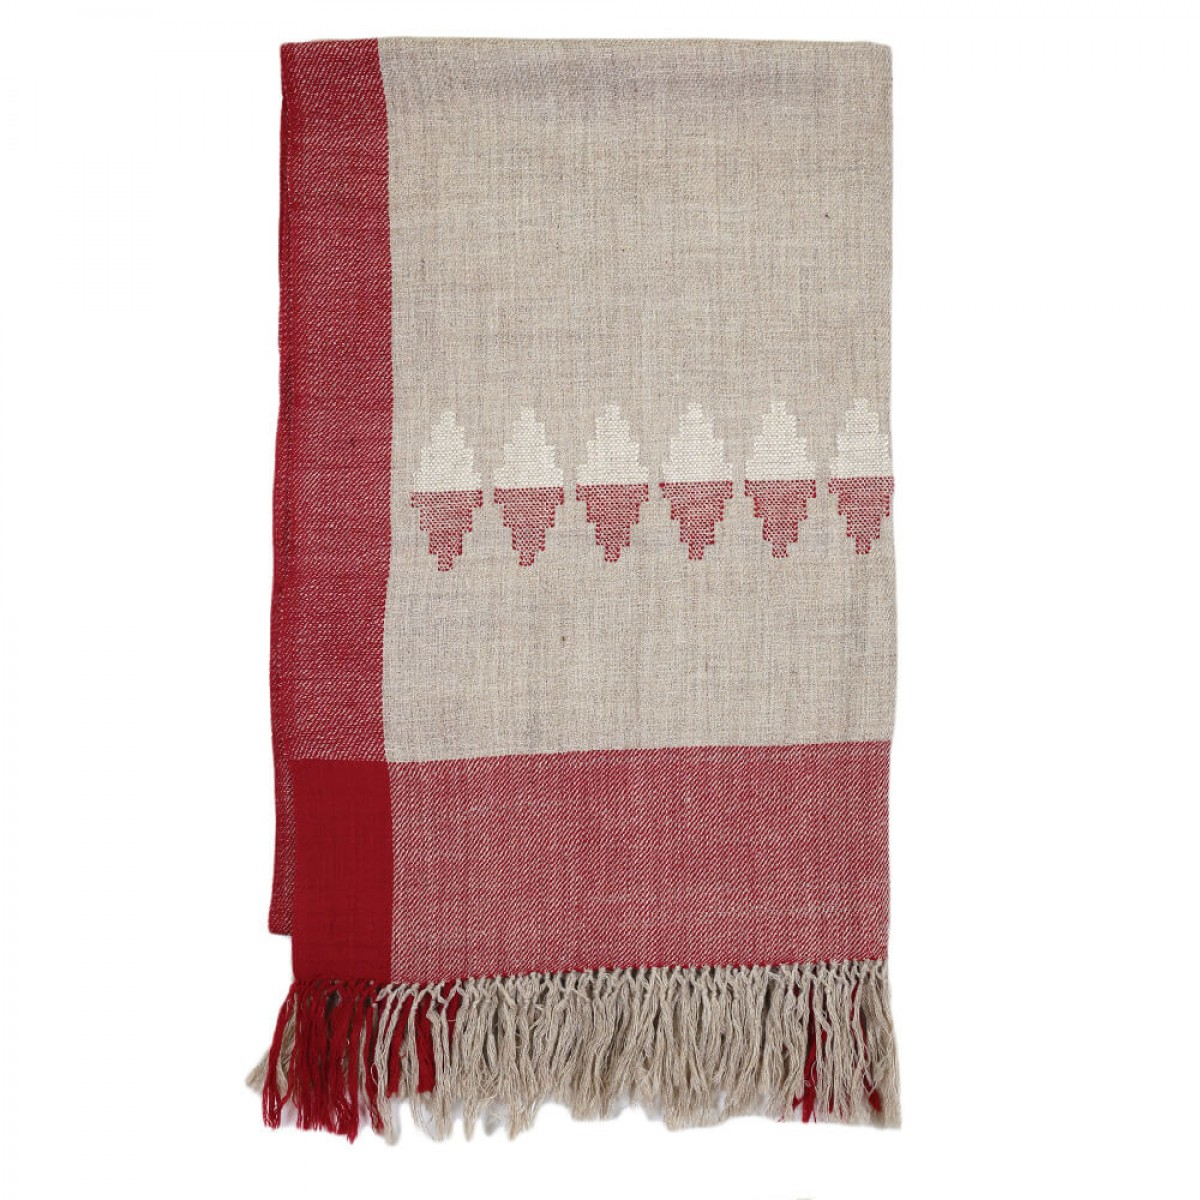 Himalayan Vibes Woolen Shawl - Natural Red